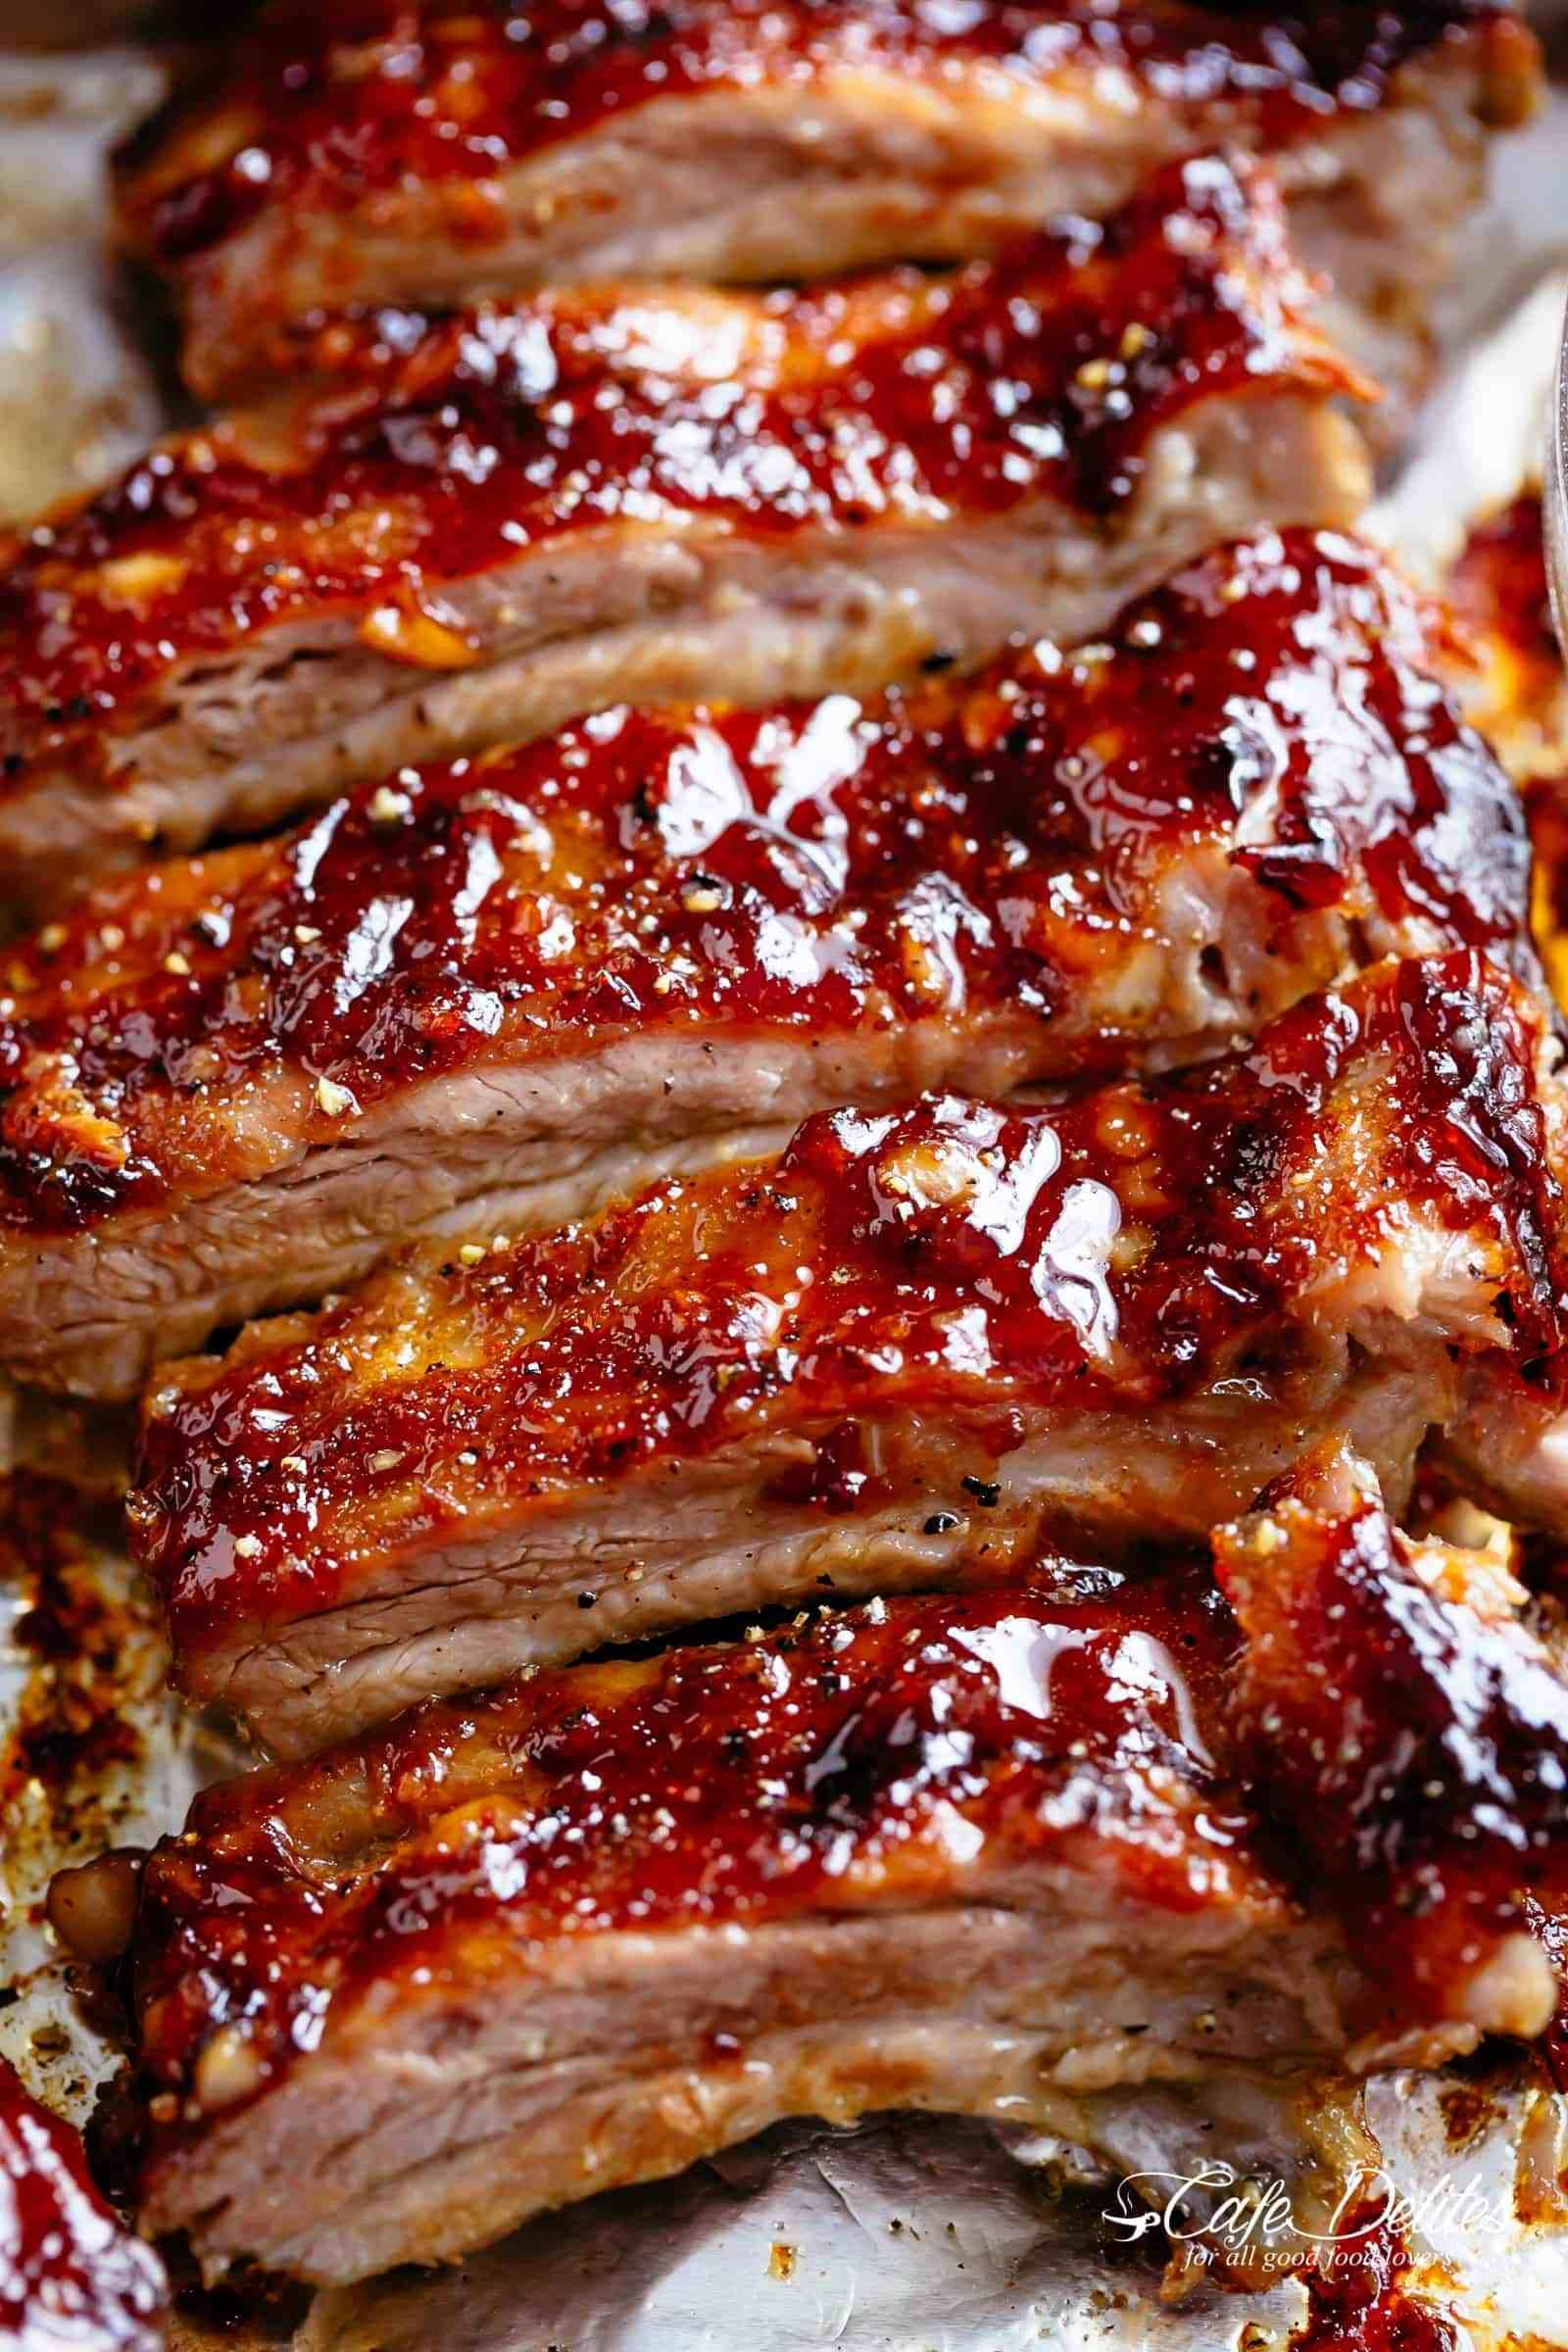 American Ribs Oven Baked And Slathered In The Most Delicious Barbecue Sauce Cafedelites Com Baked Pork Ribs Rib Recipes Ribs Recipe Oven